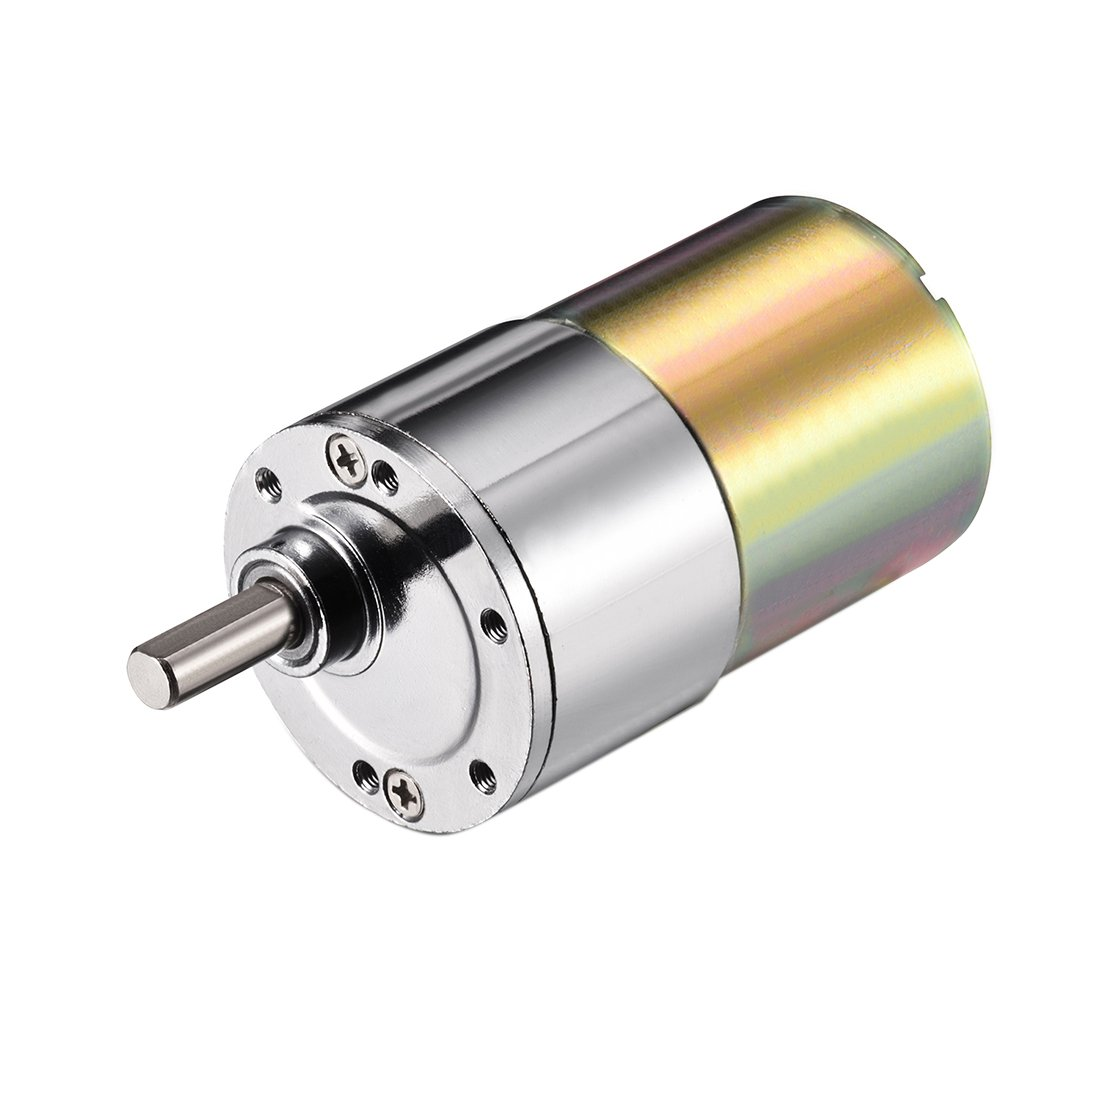 sourcingmap® DC 12V 40RPM Micro Gear Box Motor Speed Reduction Electric Gearbox Eccentric Output Shaft SYNCE012510